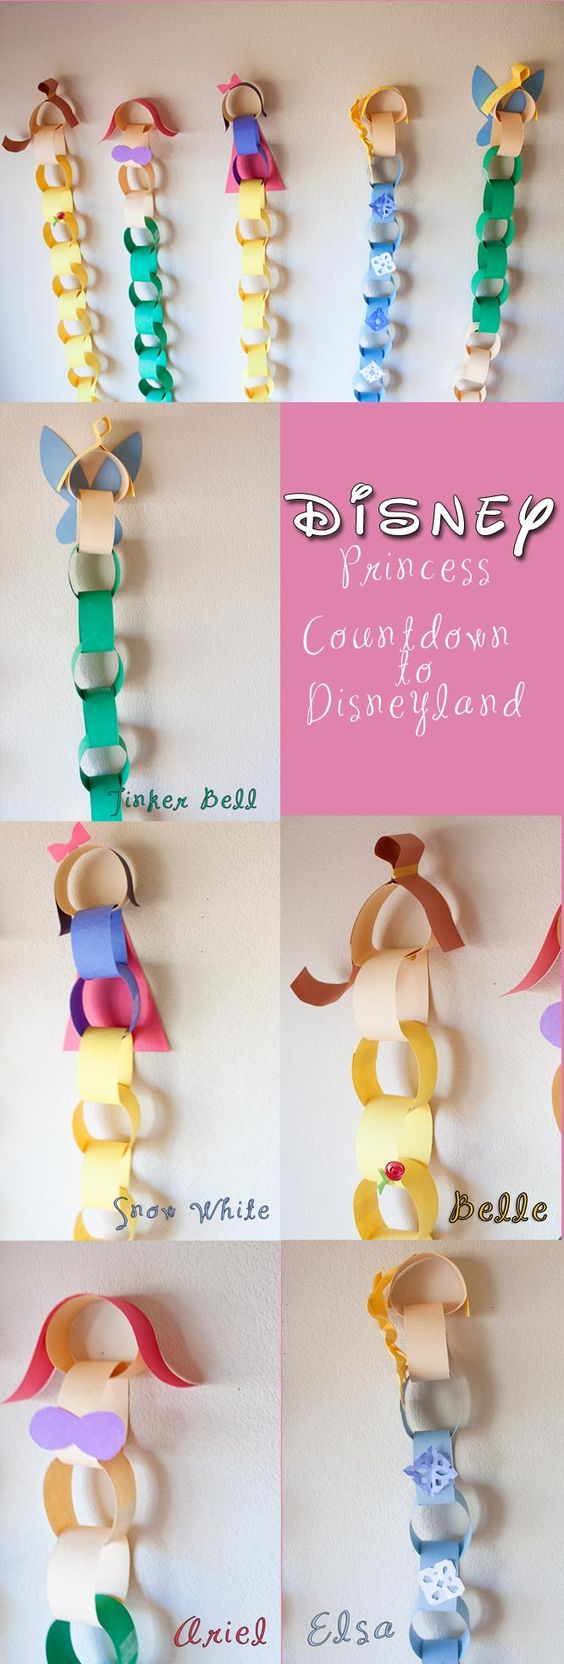 Disneyland Countdown with the Disney Princesses! How cute!: